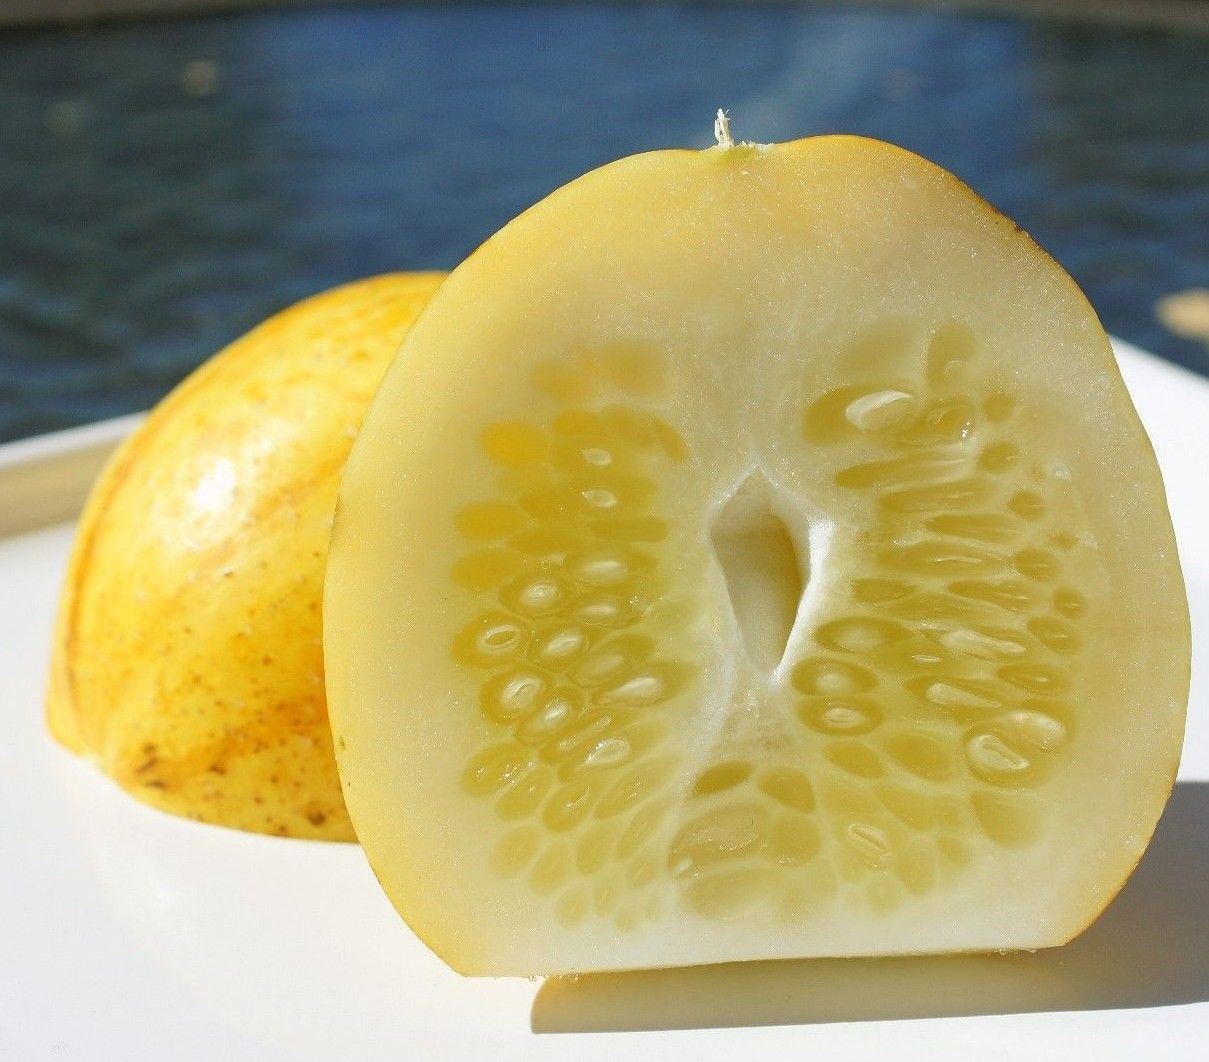 Lemon Cucumber 50 seeds * Very productive* Heirloom * Non GMO * Unusual * *SHIPPING FROM US* CombSH